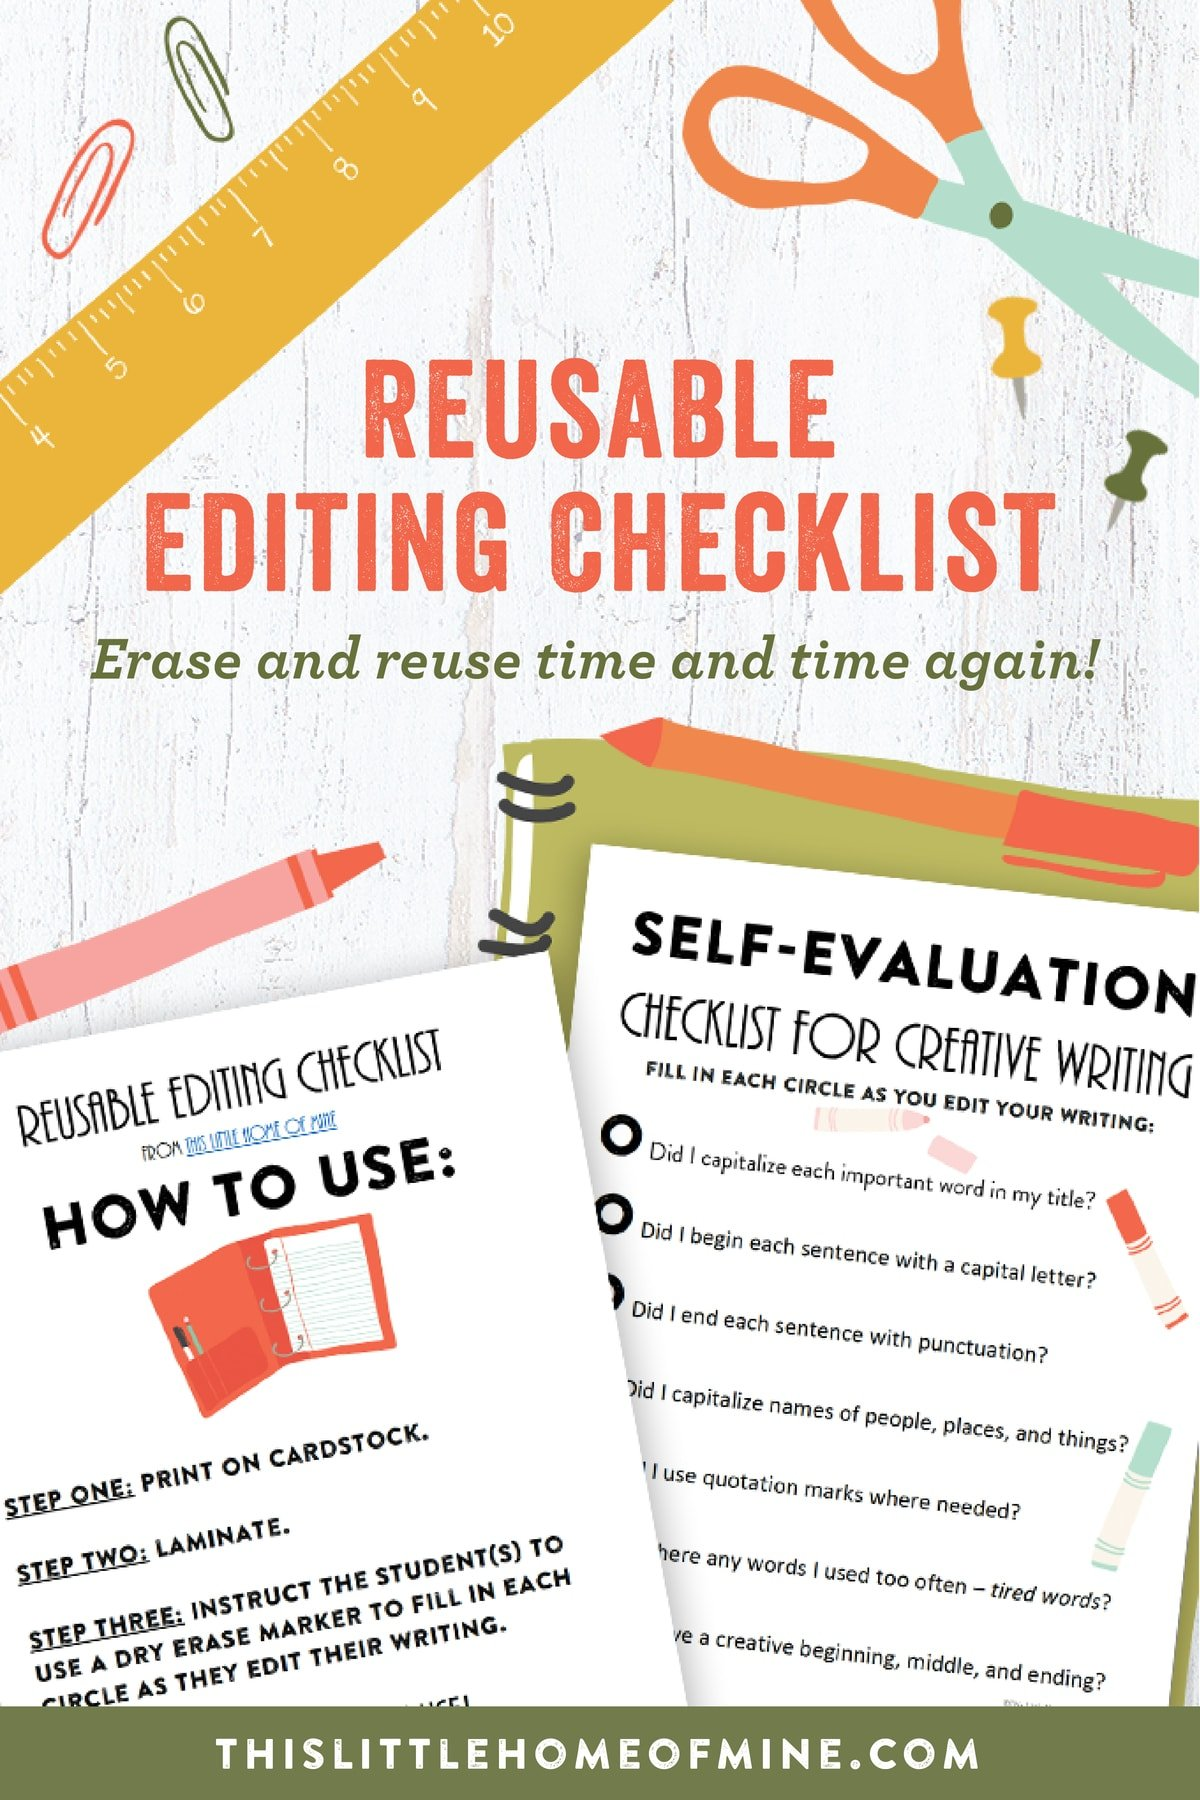 Creative Writing: Reusable Editing Checklist by This Little Home of Mine